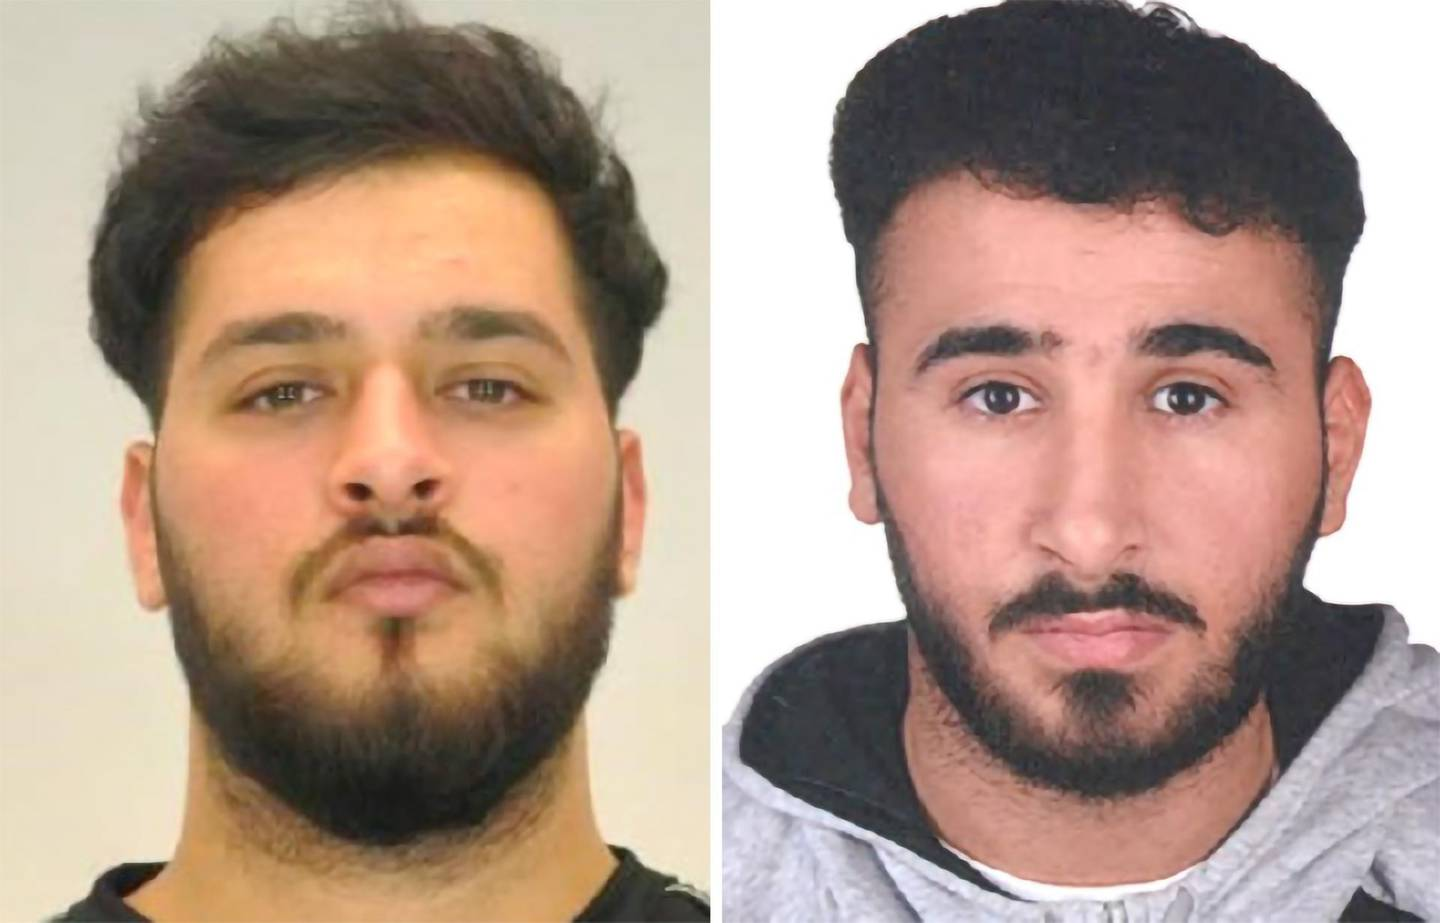 epa08825493 Two mugshots made available by the Dresden police show Mohamed REMMO (21, L) and Abdul Majed REMMO (21, R) who are being searched for in connection with the robbery in the Green Vault in Dresden.  According to a police report three people have been arrested in relation to the November 2019 robbery of the Dresden's Treasury Green Vault.  EPA/POLICE HANDOUT  HANDOUT EDITORIAL USE ONLY/NO SALES